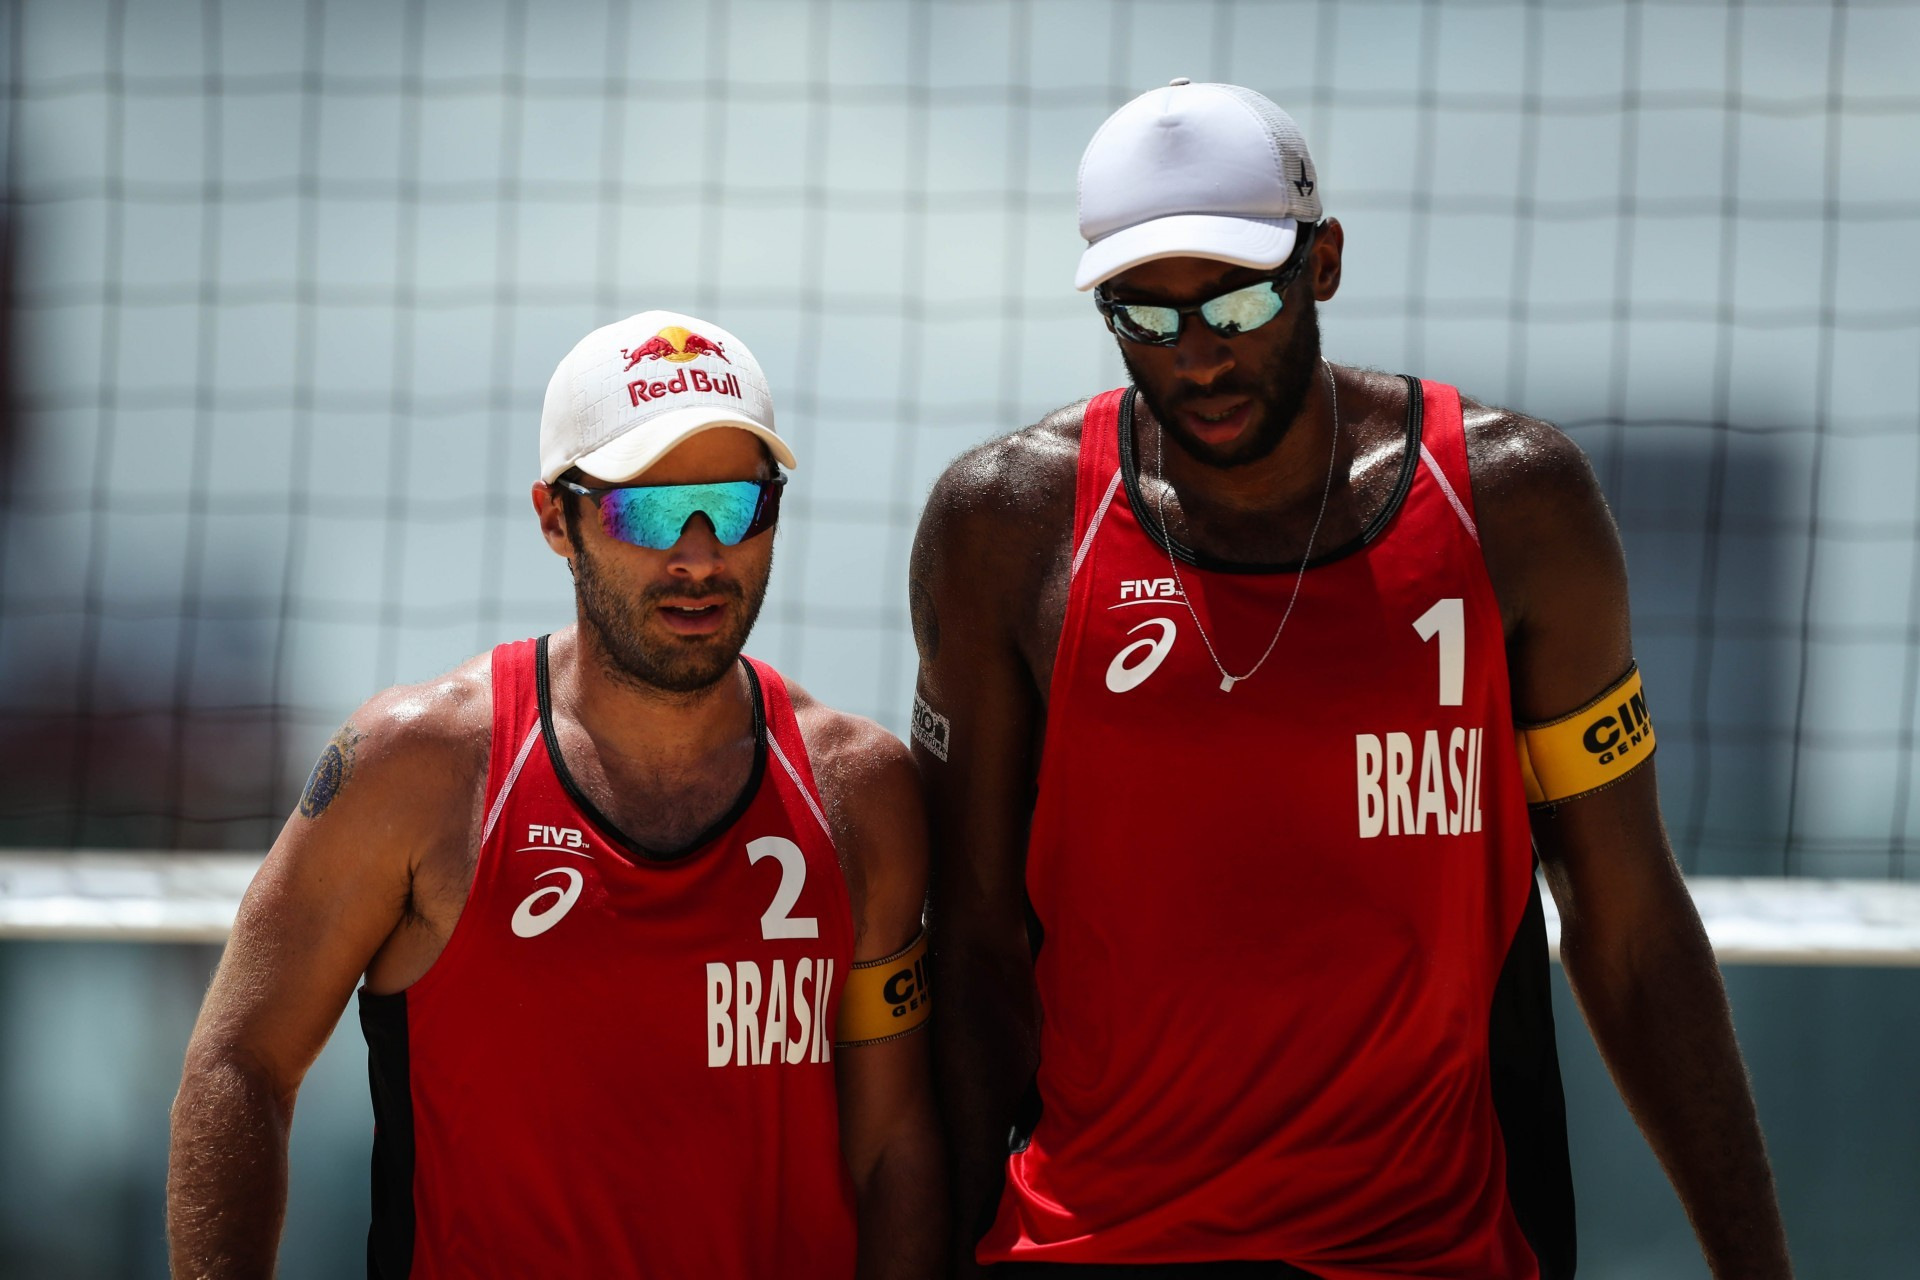 Bruno, 1.85m, and Evandro, 2.10m, have very different techniques when it comes to spiking